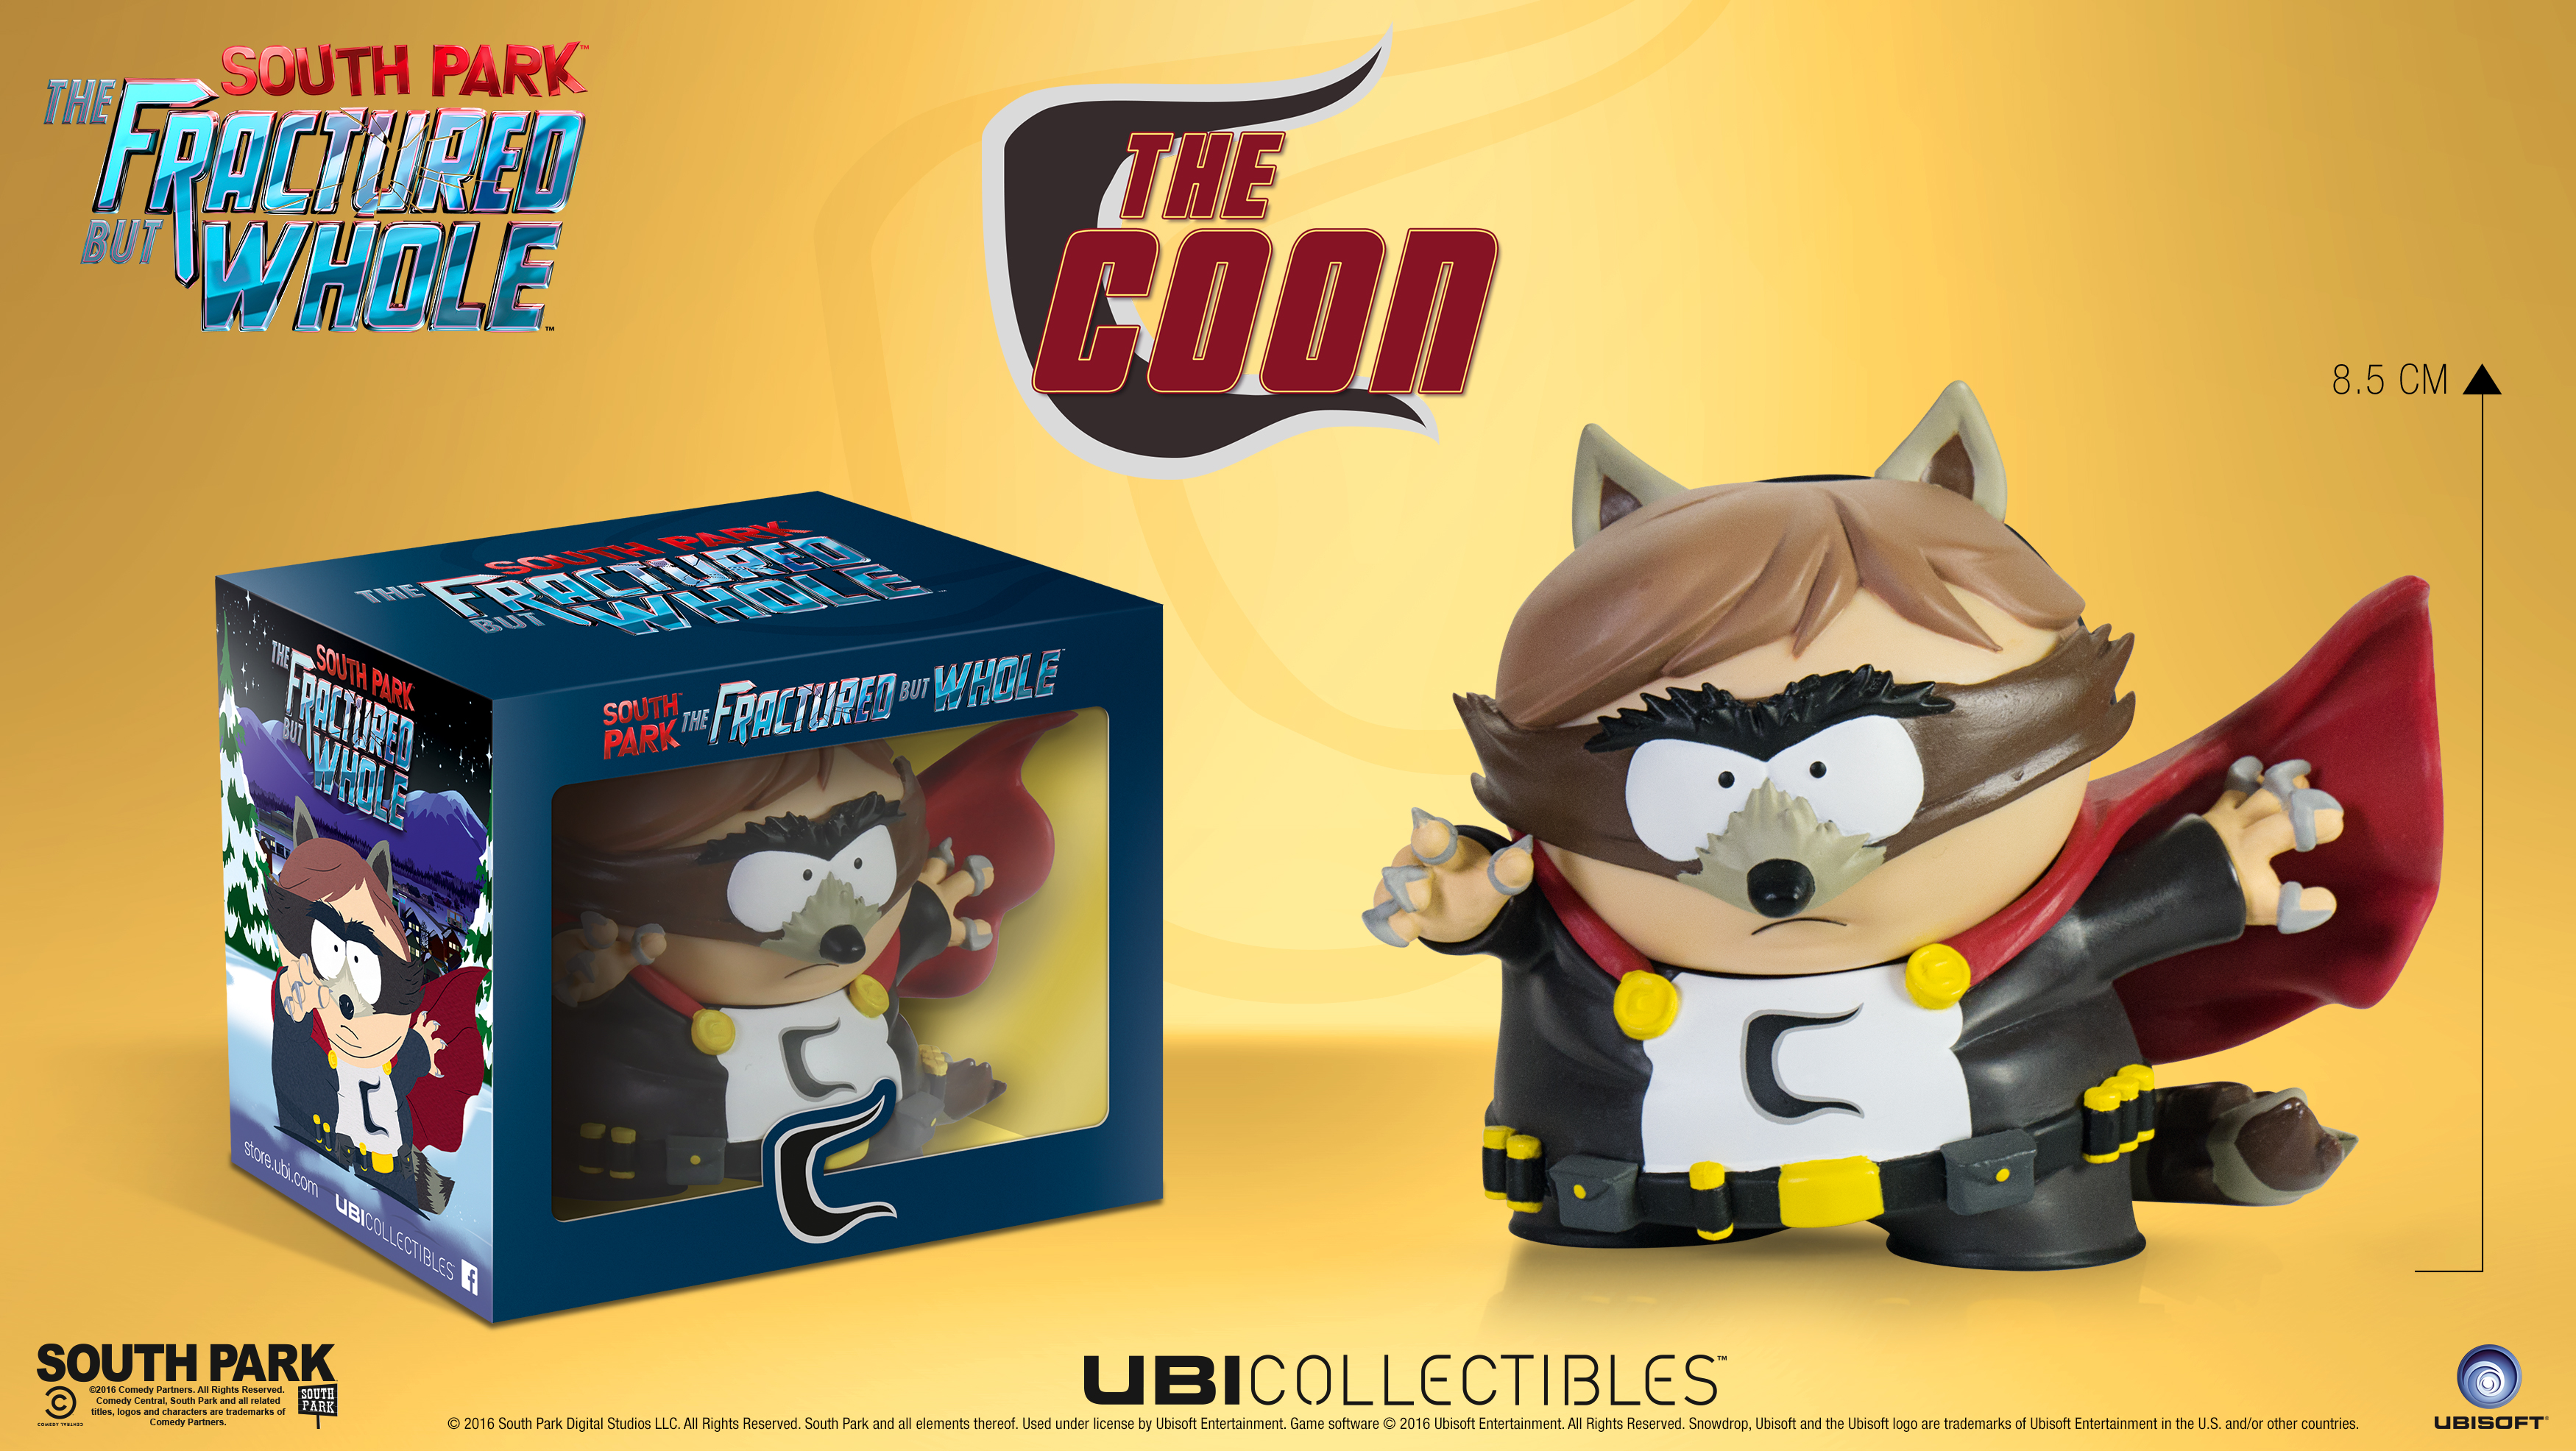 2-coon-southpark_3_buc